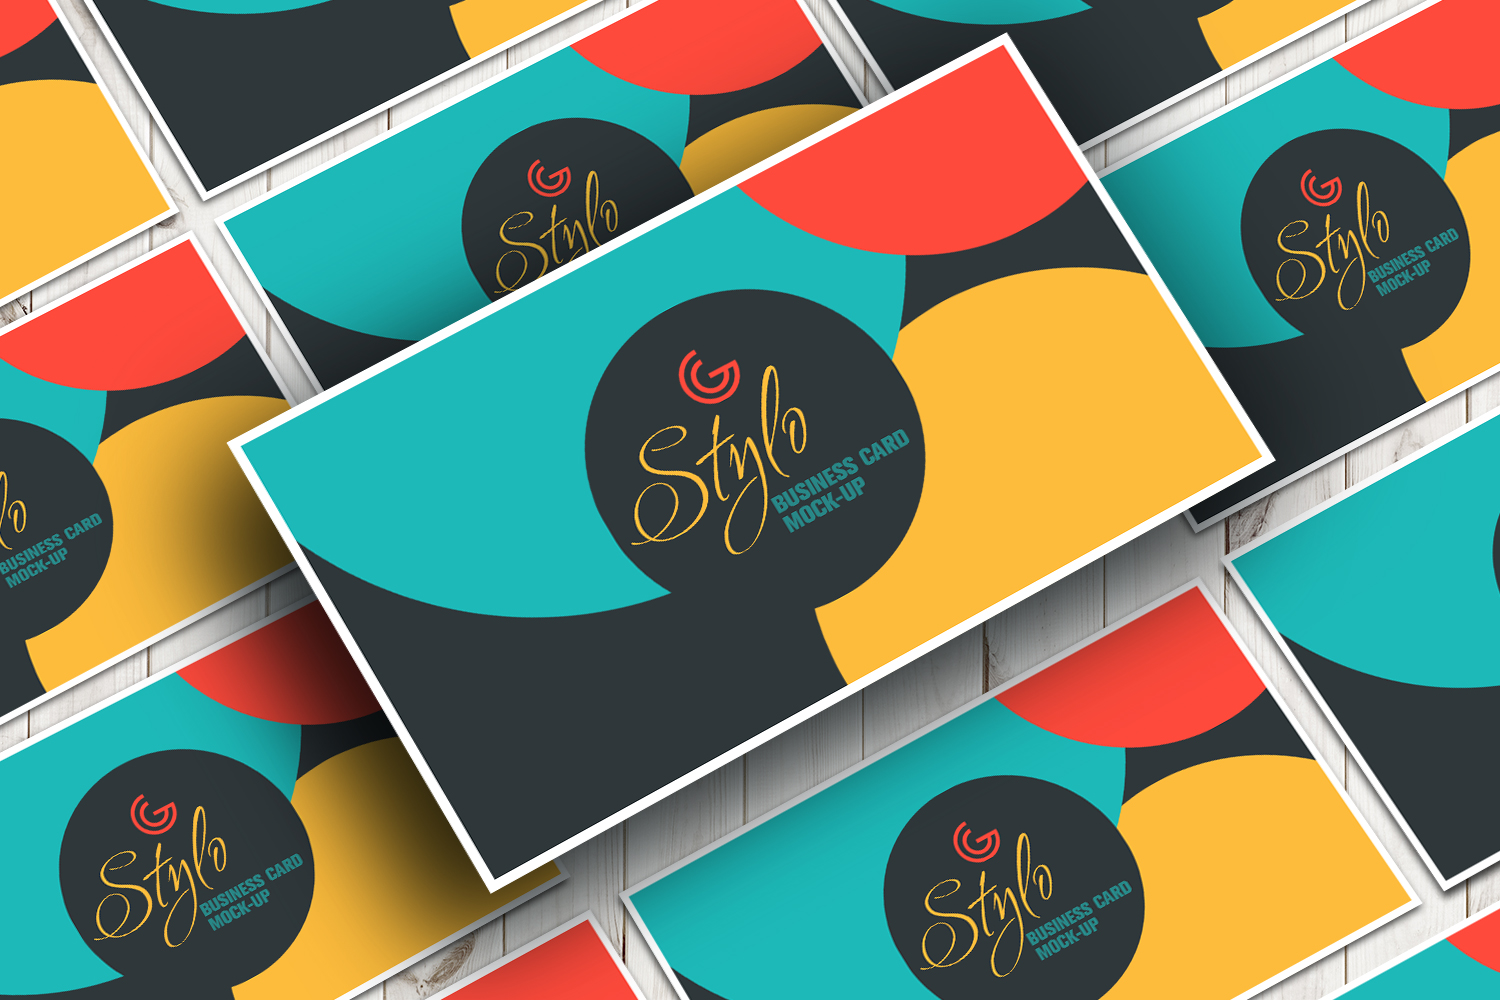 free-stylo-business-card-mock-up-psd-with-wooden-background